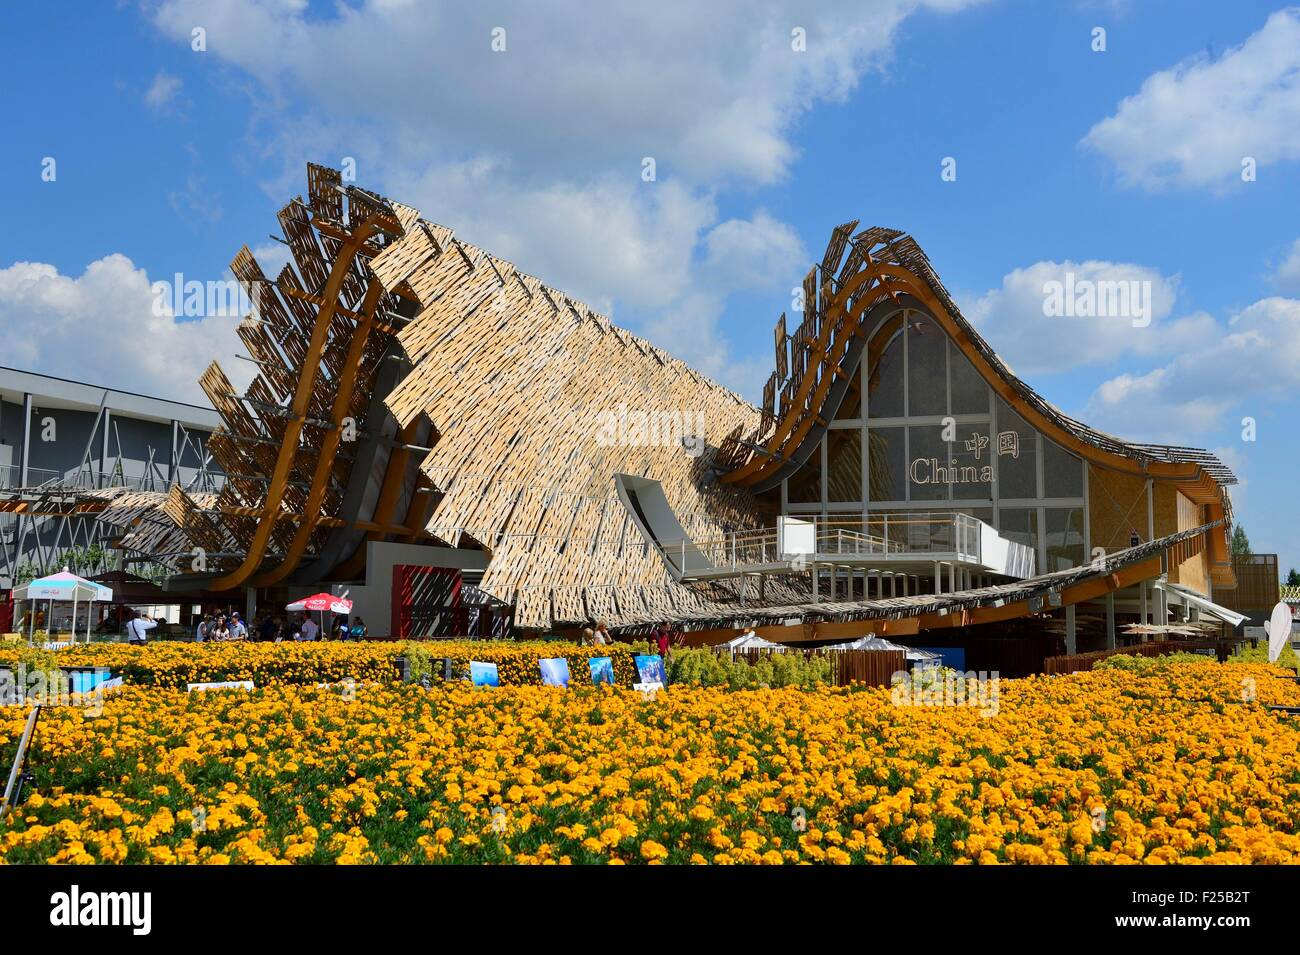 Italy, Lombardy, Milan, World Exhibition Expo Milano 2015, the Decumanus, building dedicated to China - Stock Image